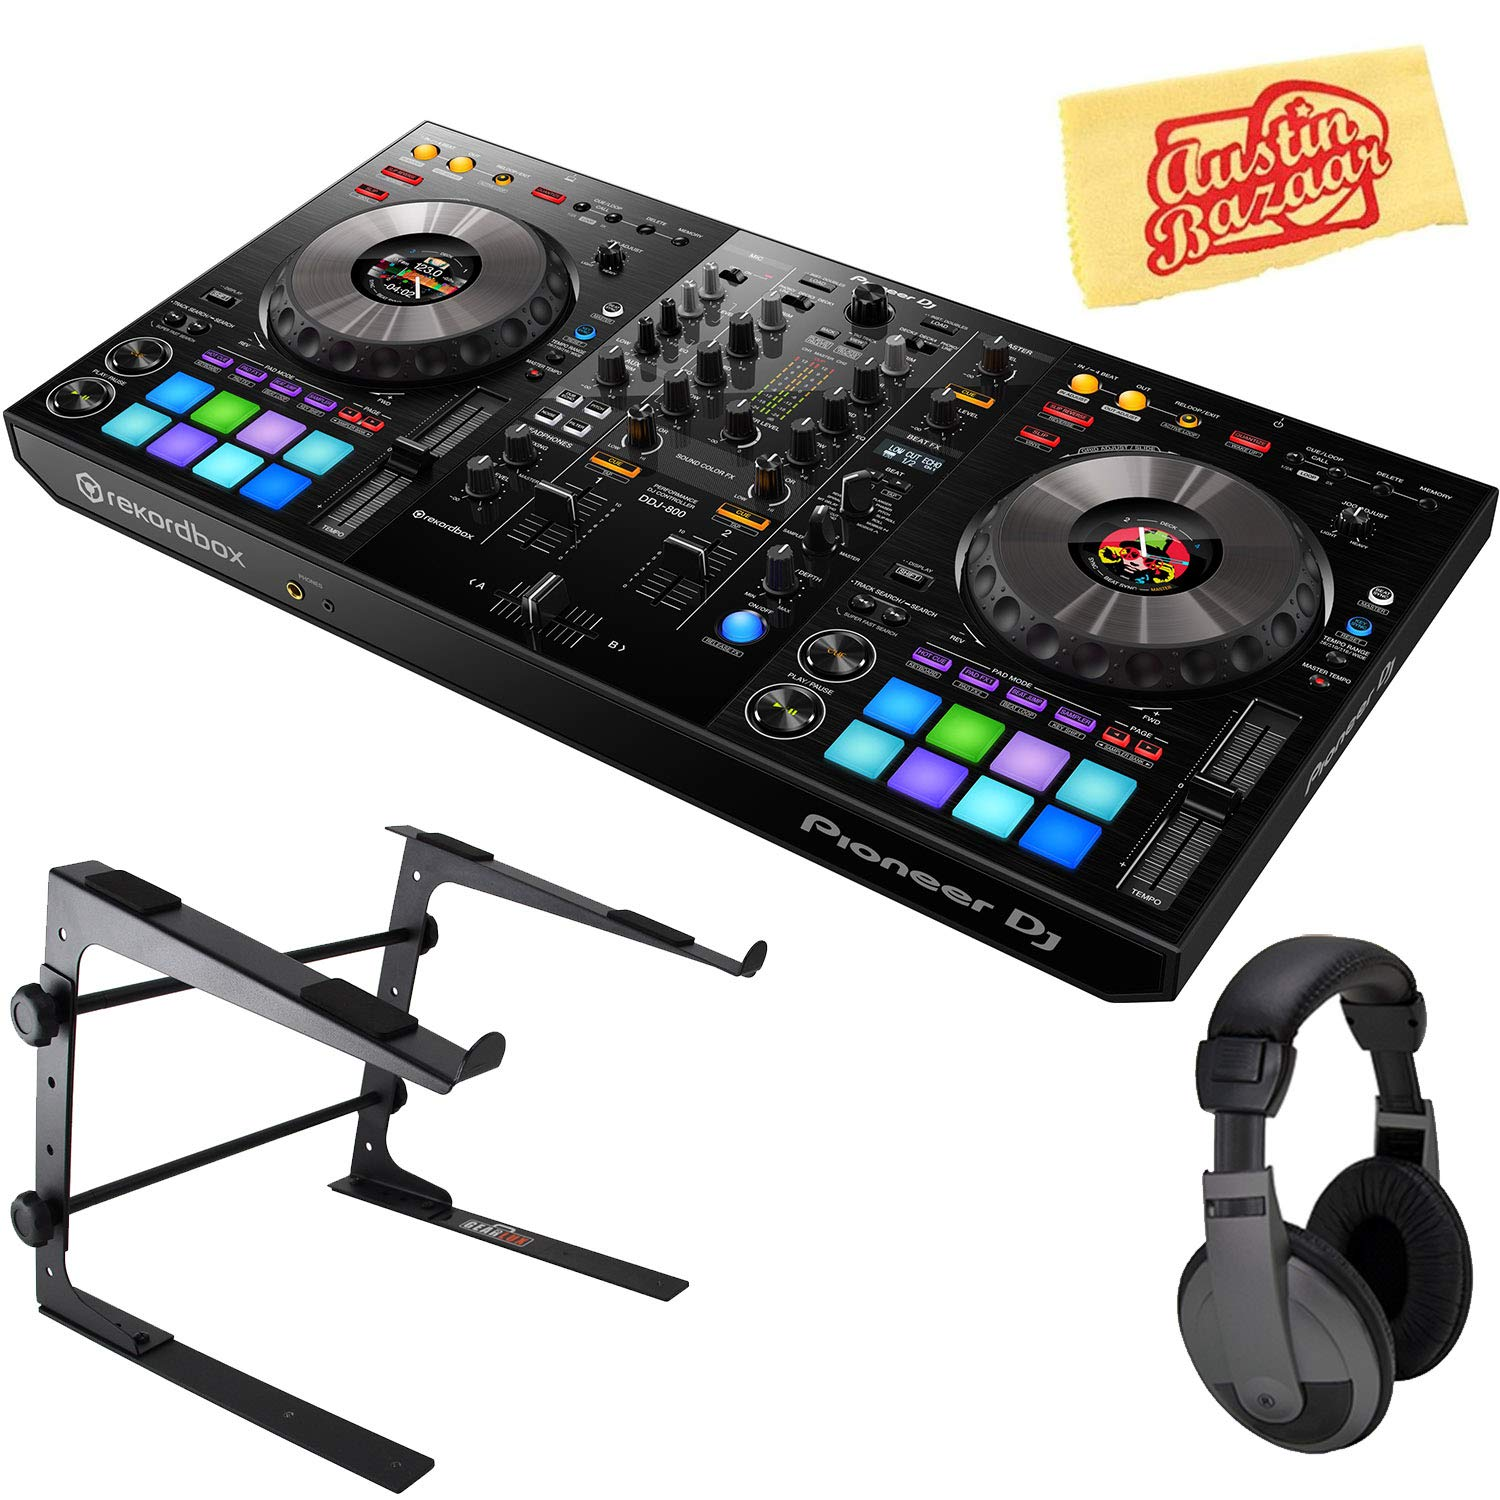 and Austin Bazaar Polishing Cloth Headphones Pioneer DJM-S3 2-Channel Mixer for Serato DJ Bundle with Stand